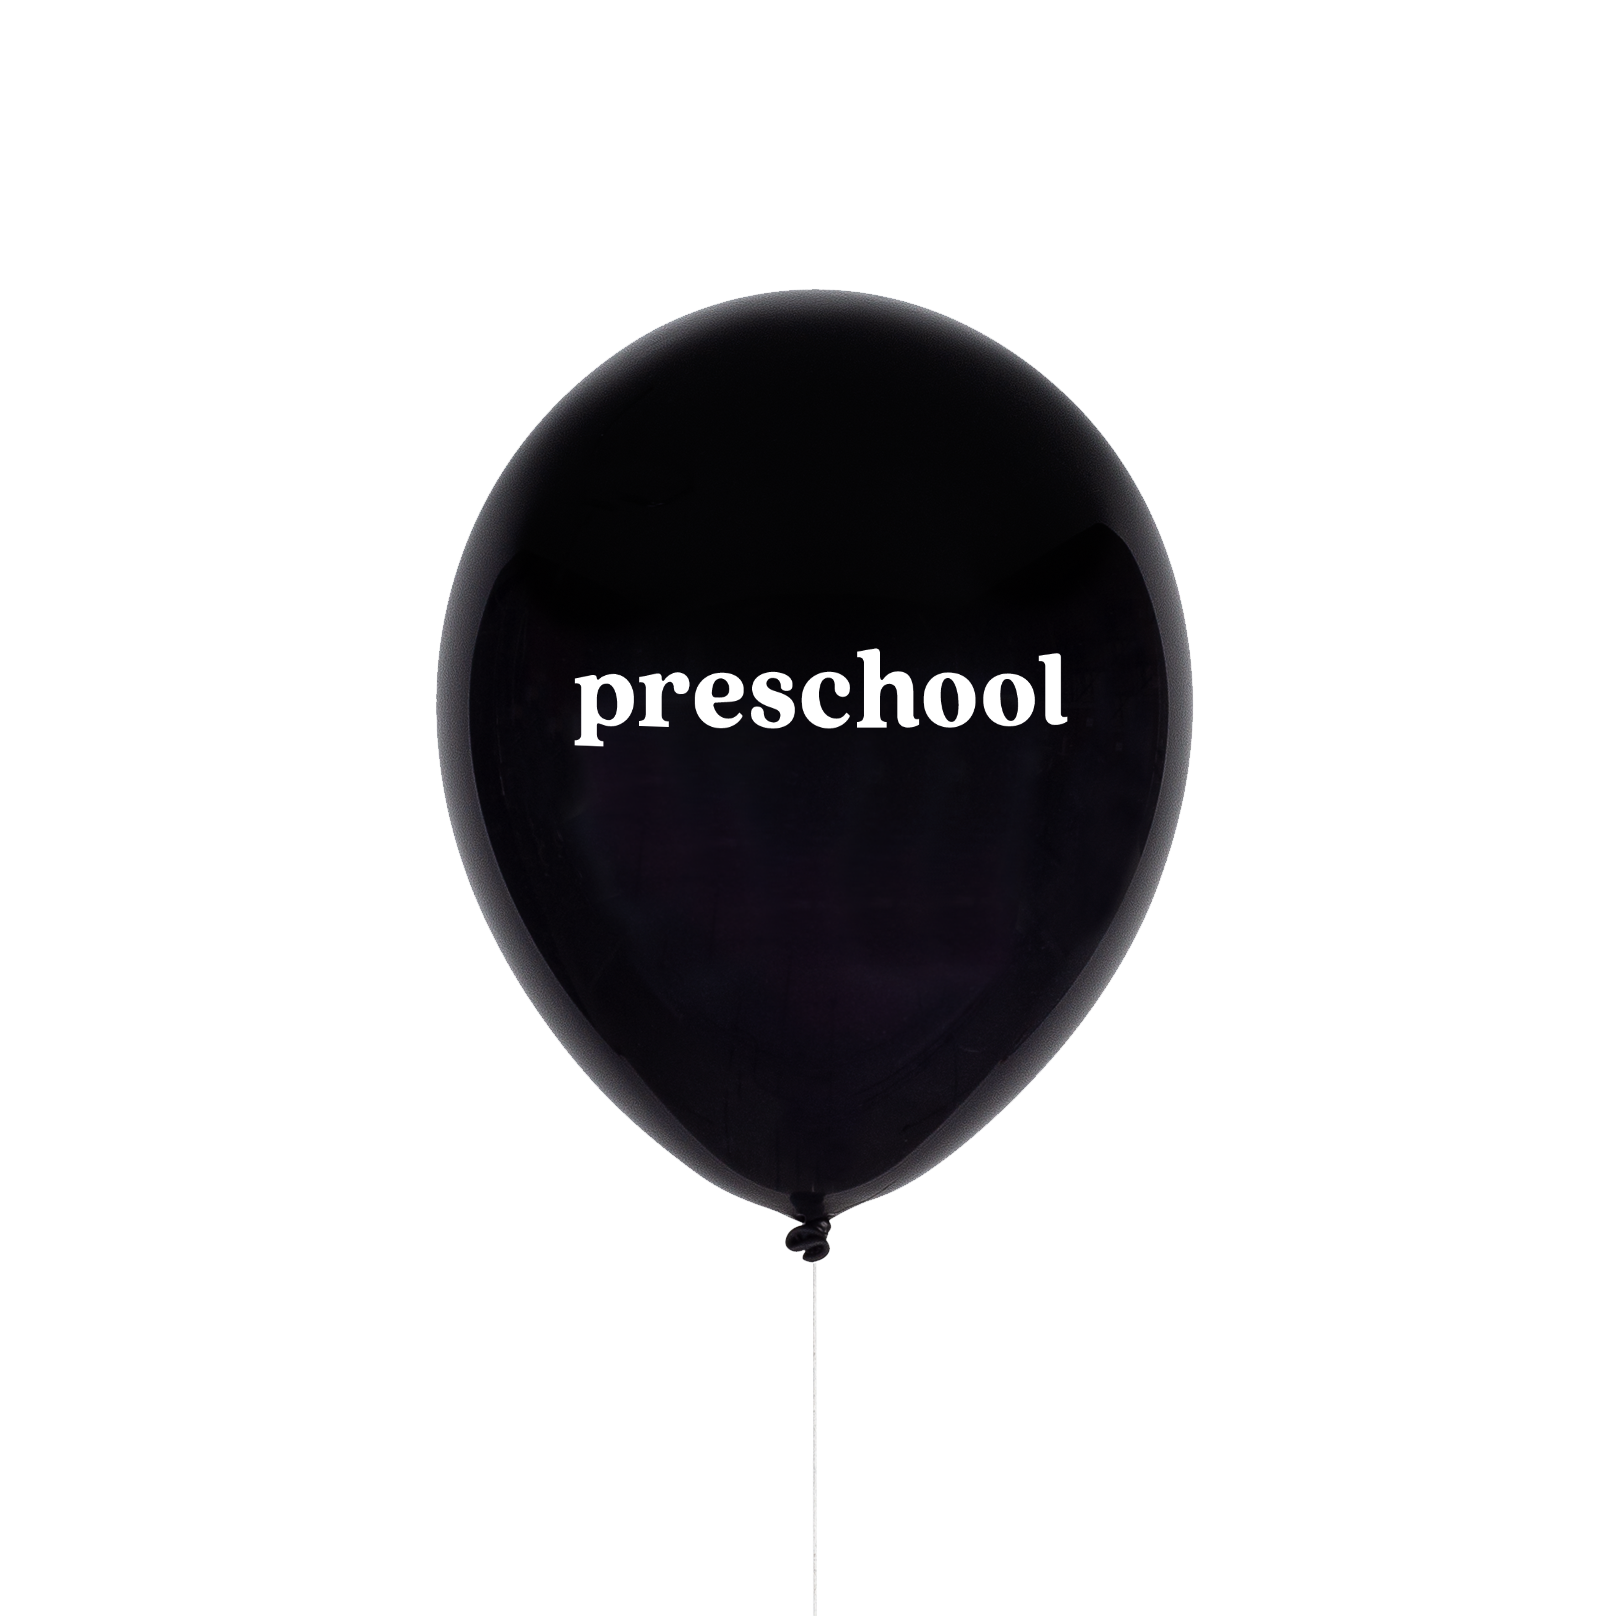 Preschool Grade School Balloon | The Party Darling